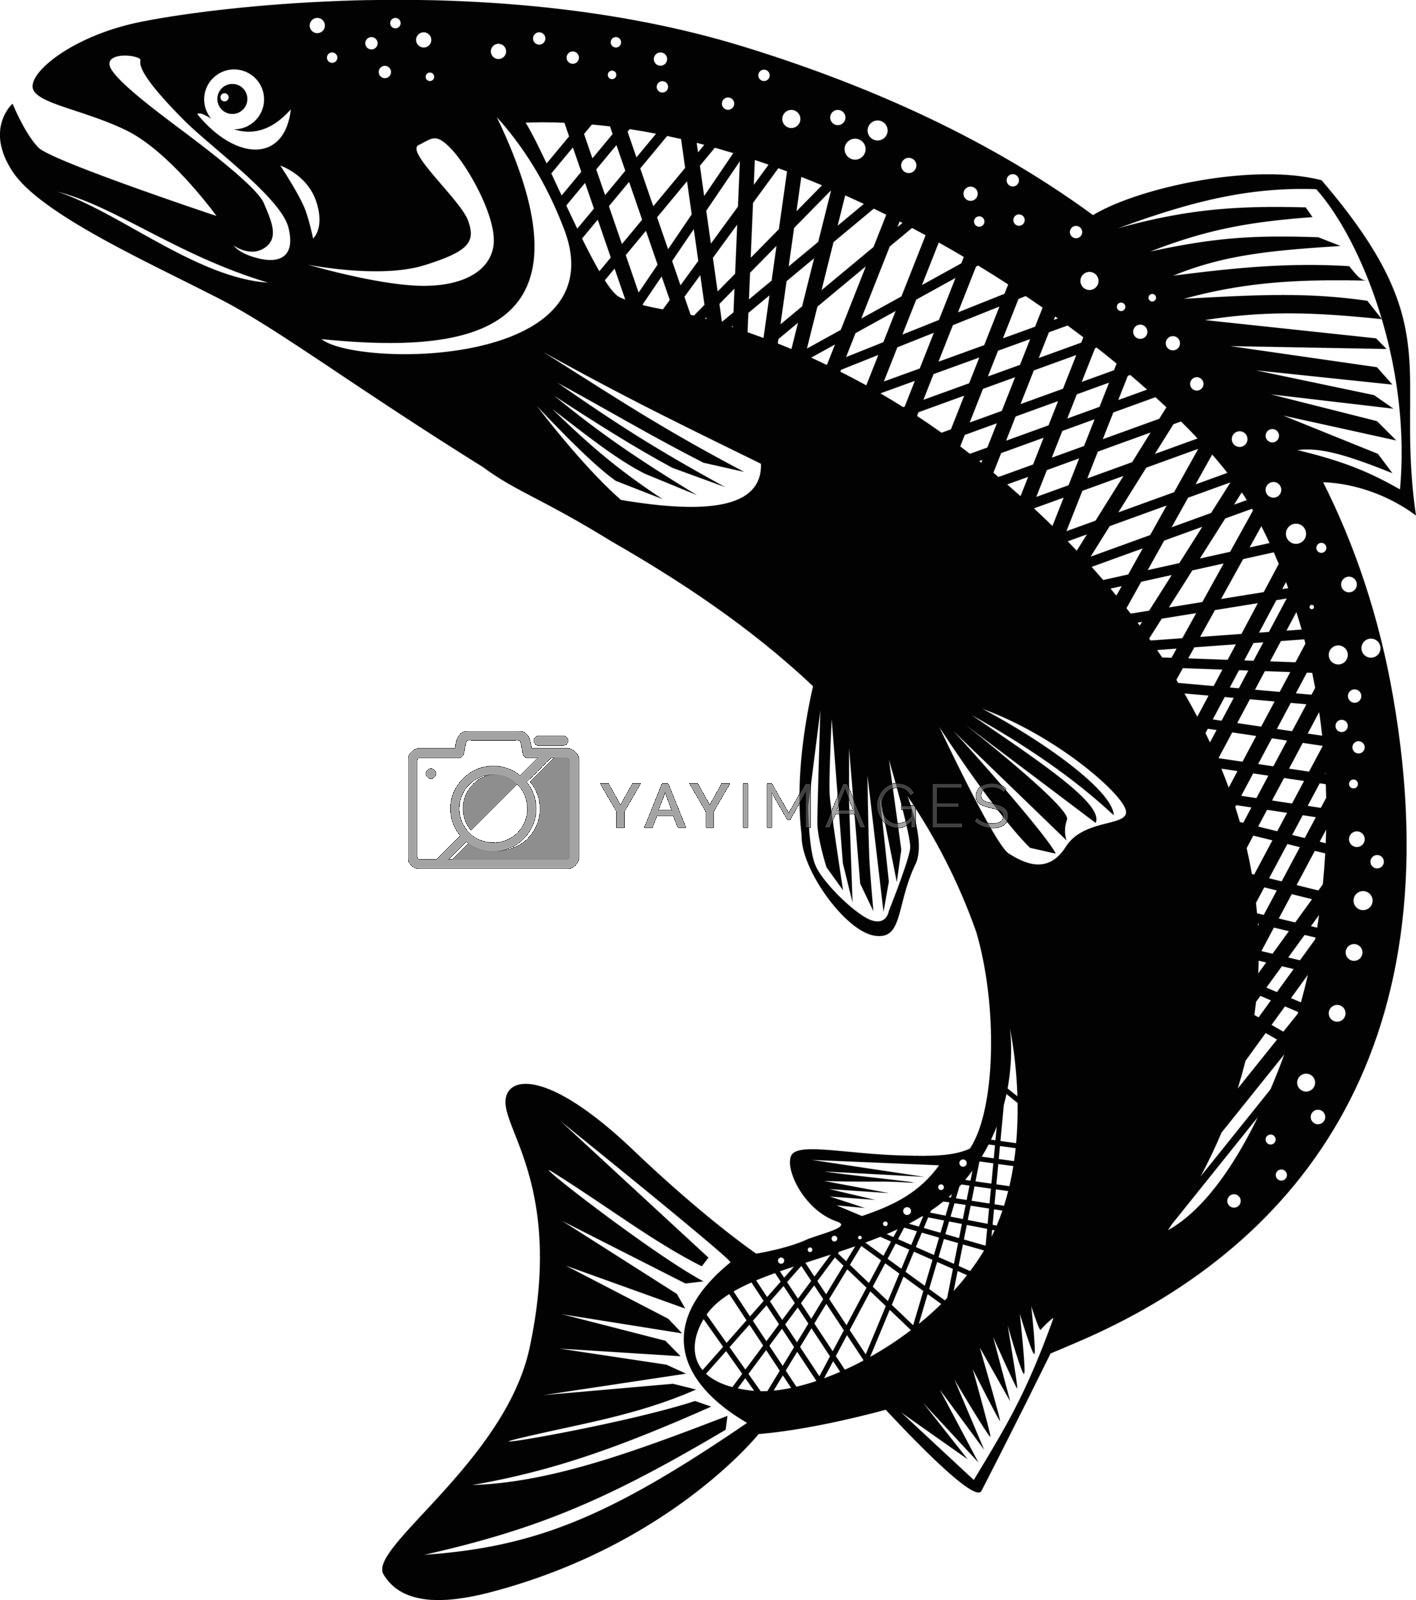 Retro woodcut style illustration of rainbow trout, Oncorhynchus mykiss, steelhead, Columbia River redband trout, coastal rainbow trout, a species of salmonid on isolated background in black and white.